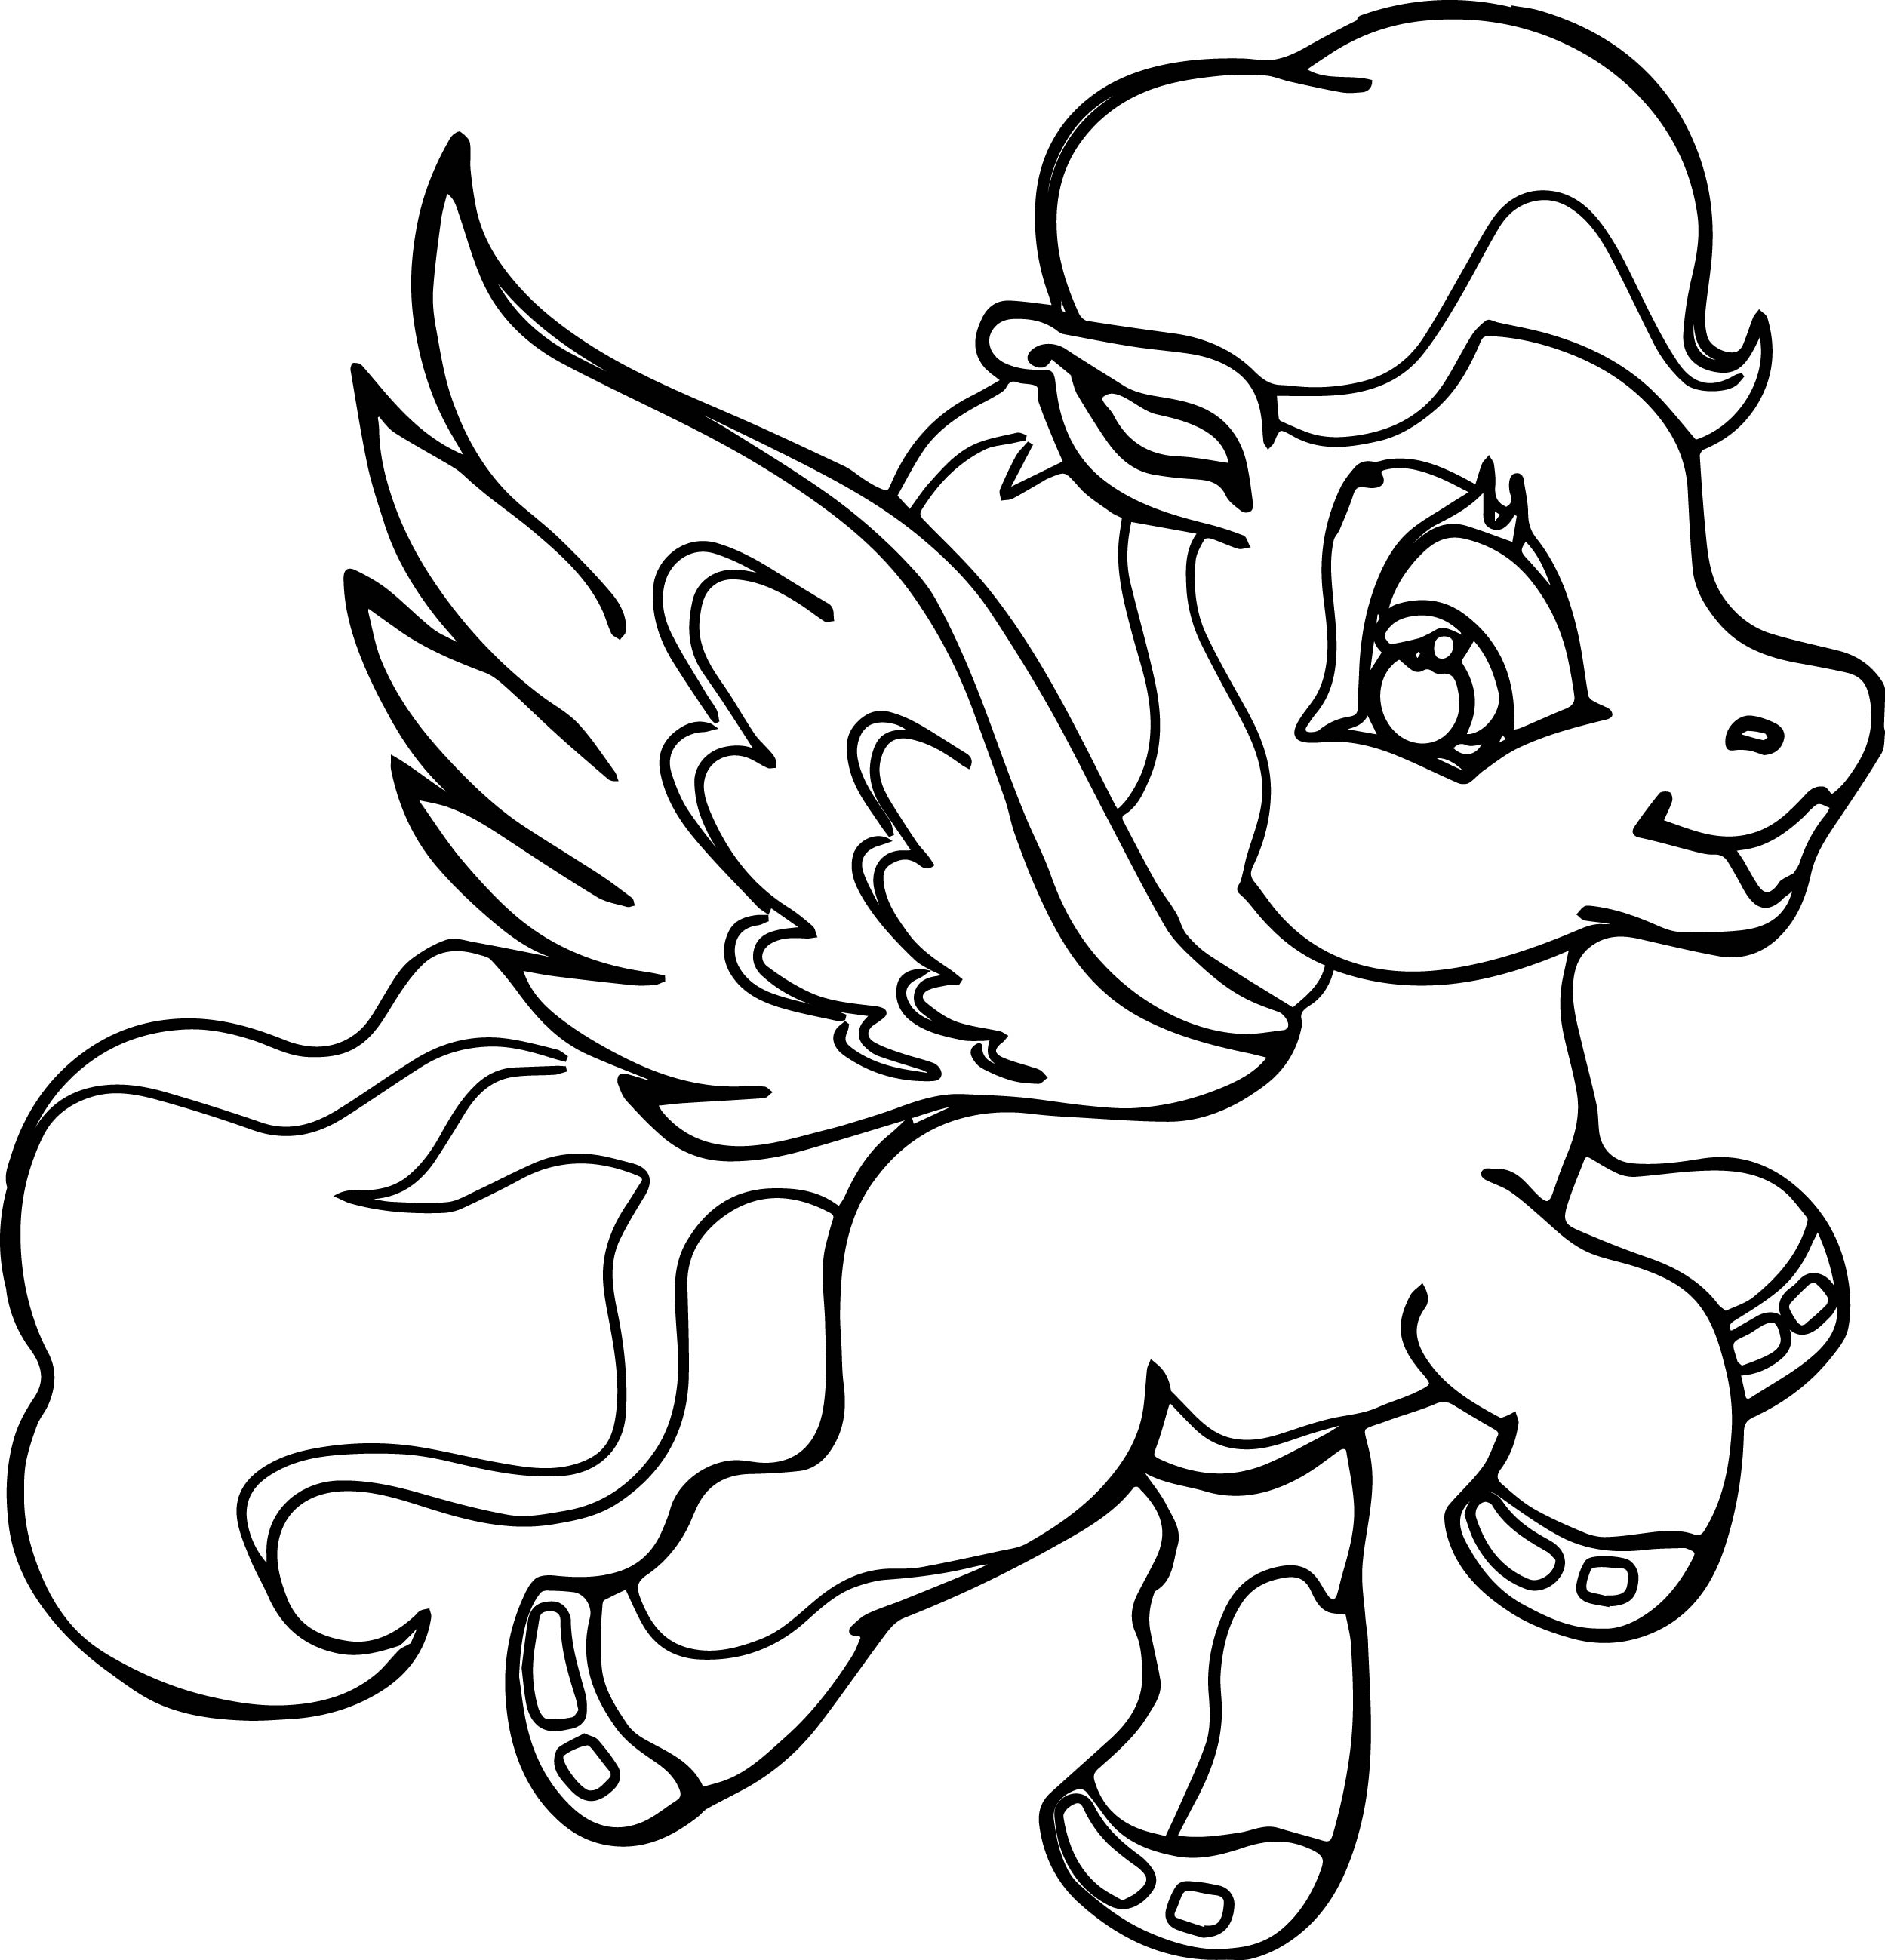 Flying Little Pony Coloring Page on Cartoon Apple